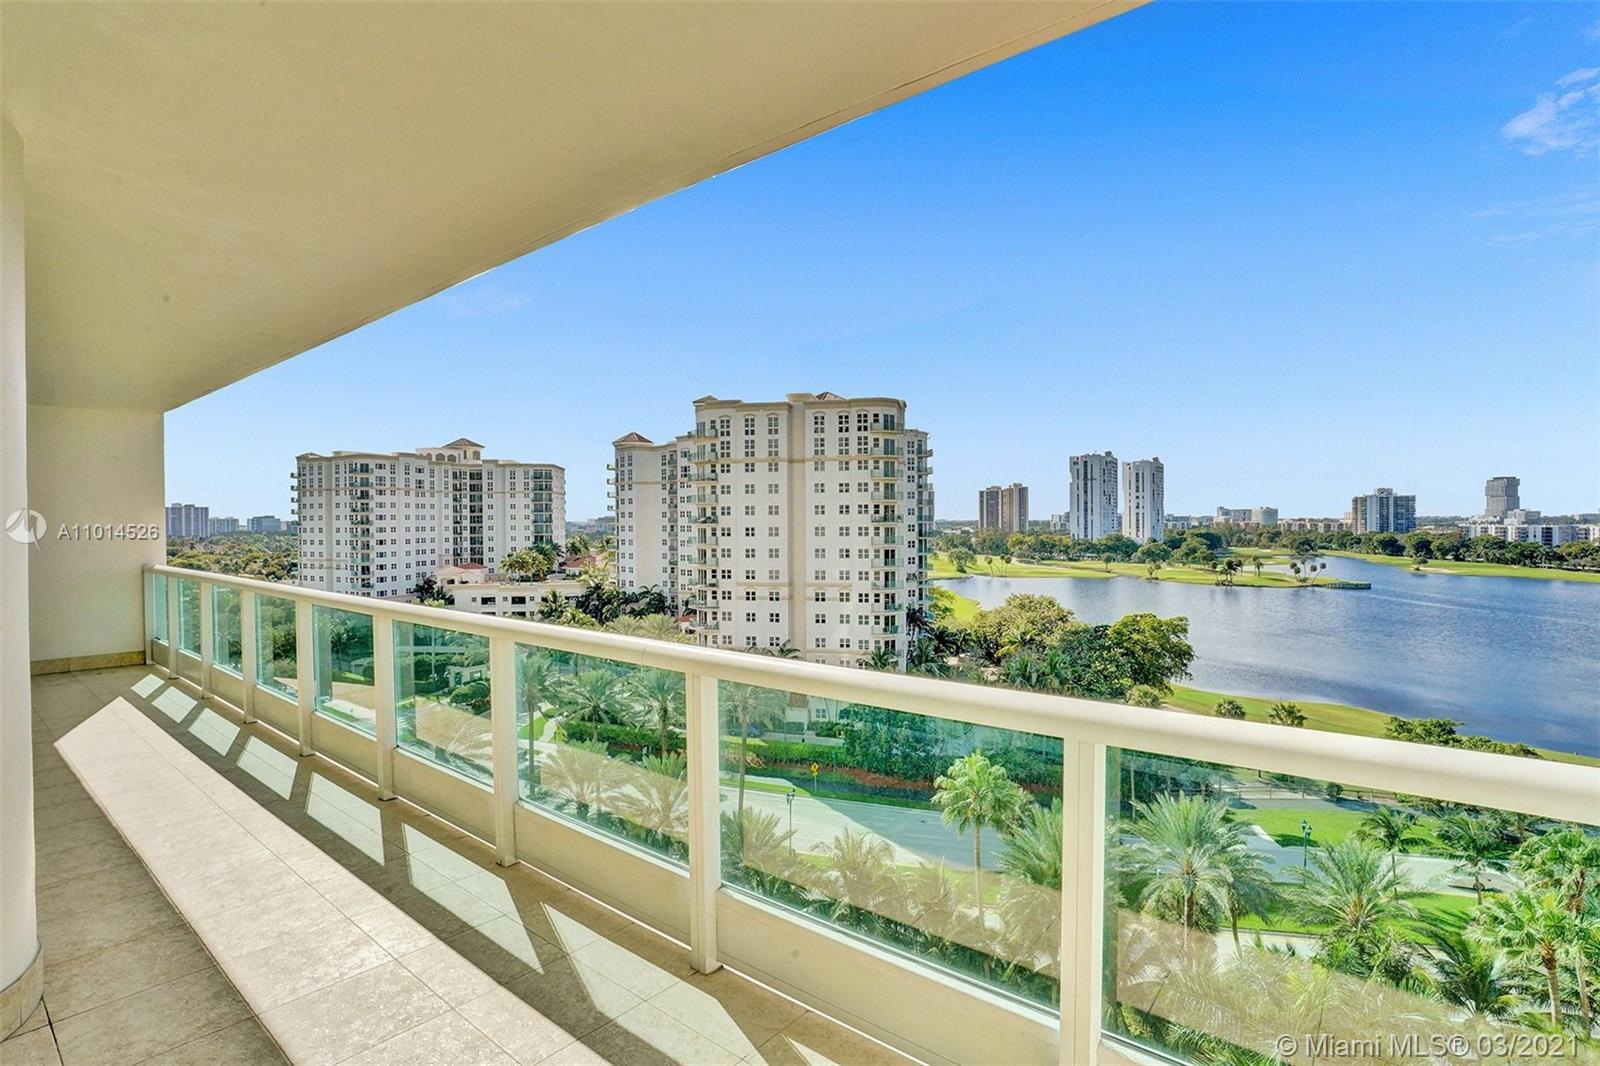 Photo of 20155 38th Ct Unit #1102, Aventura, Florida, 33180 -